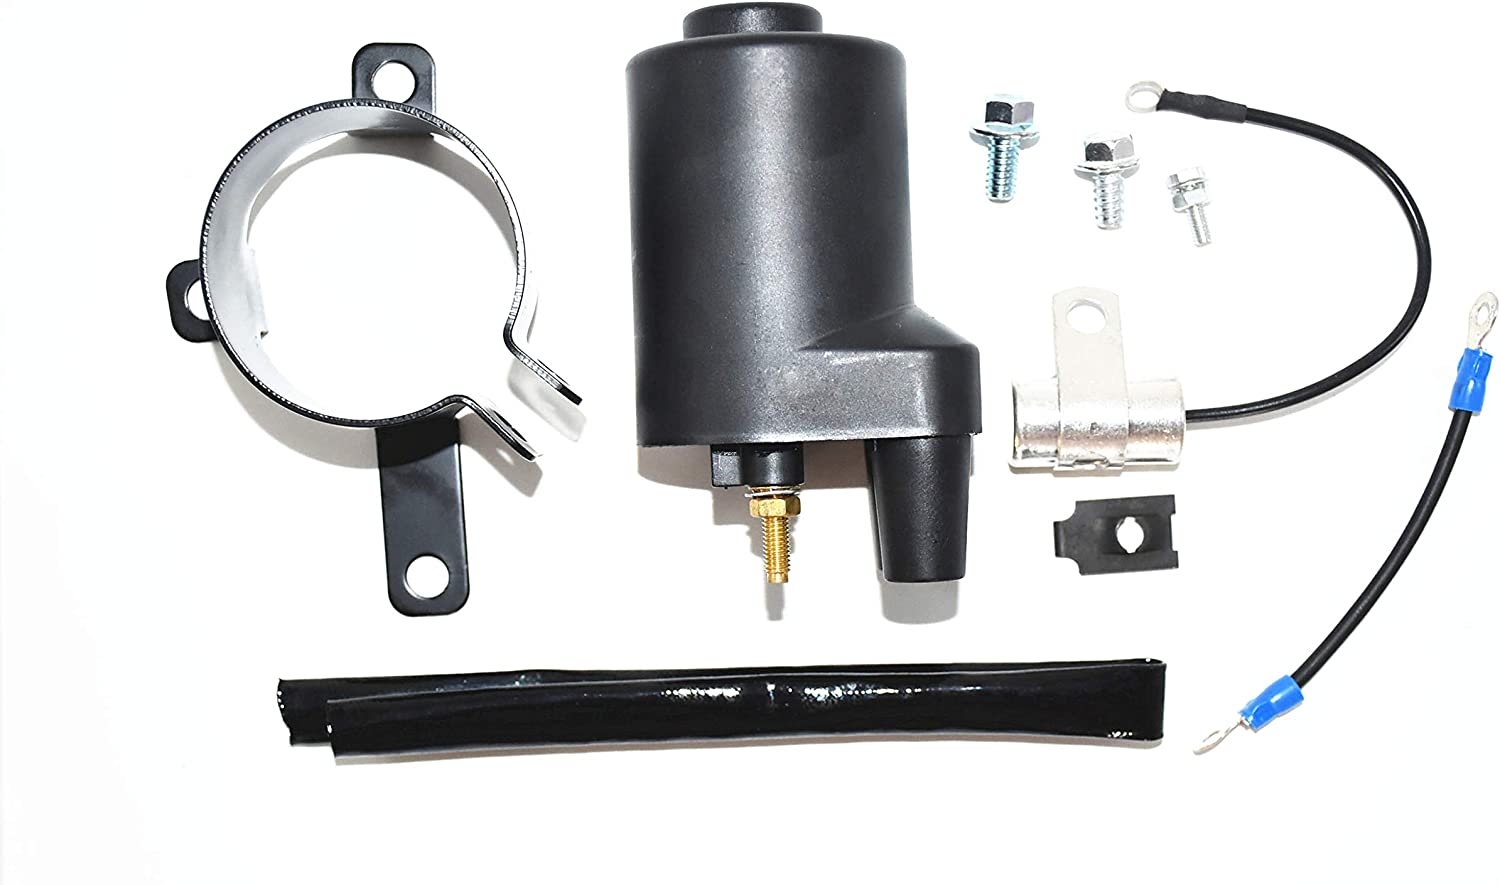 Partman Ignition Coil for Onan Model 541-0522 166-0820 HE166-0761 HE541-0522 New Replaces Onan Ignition Coil